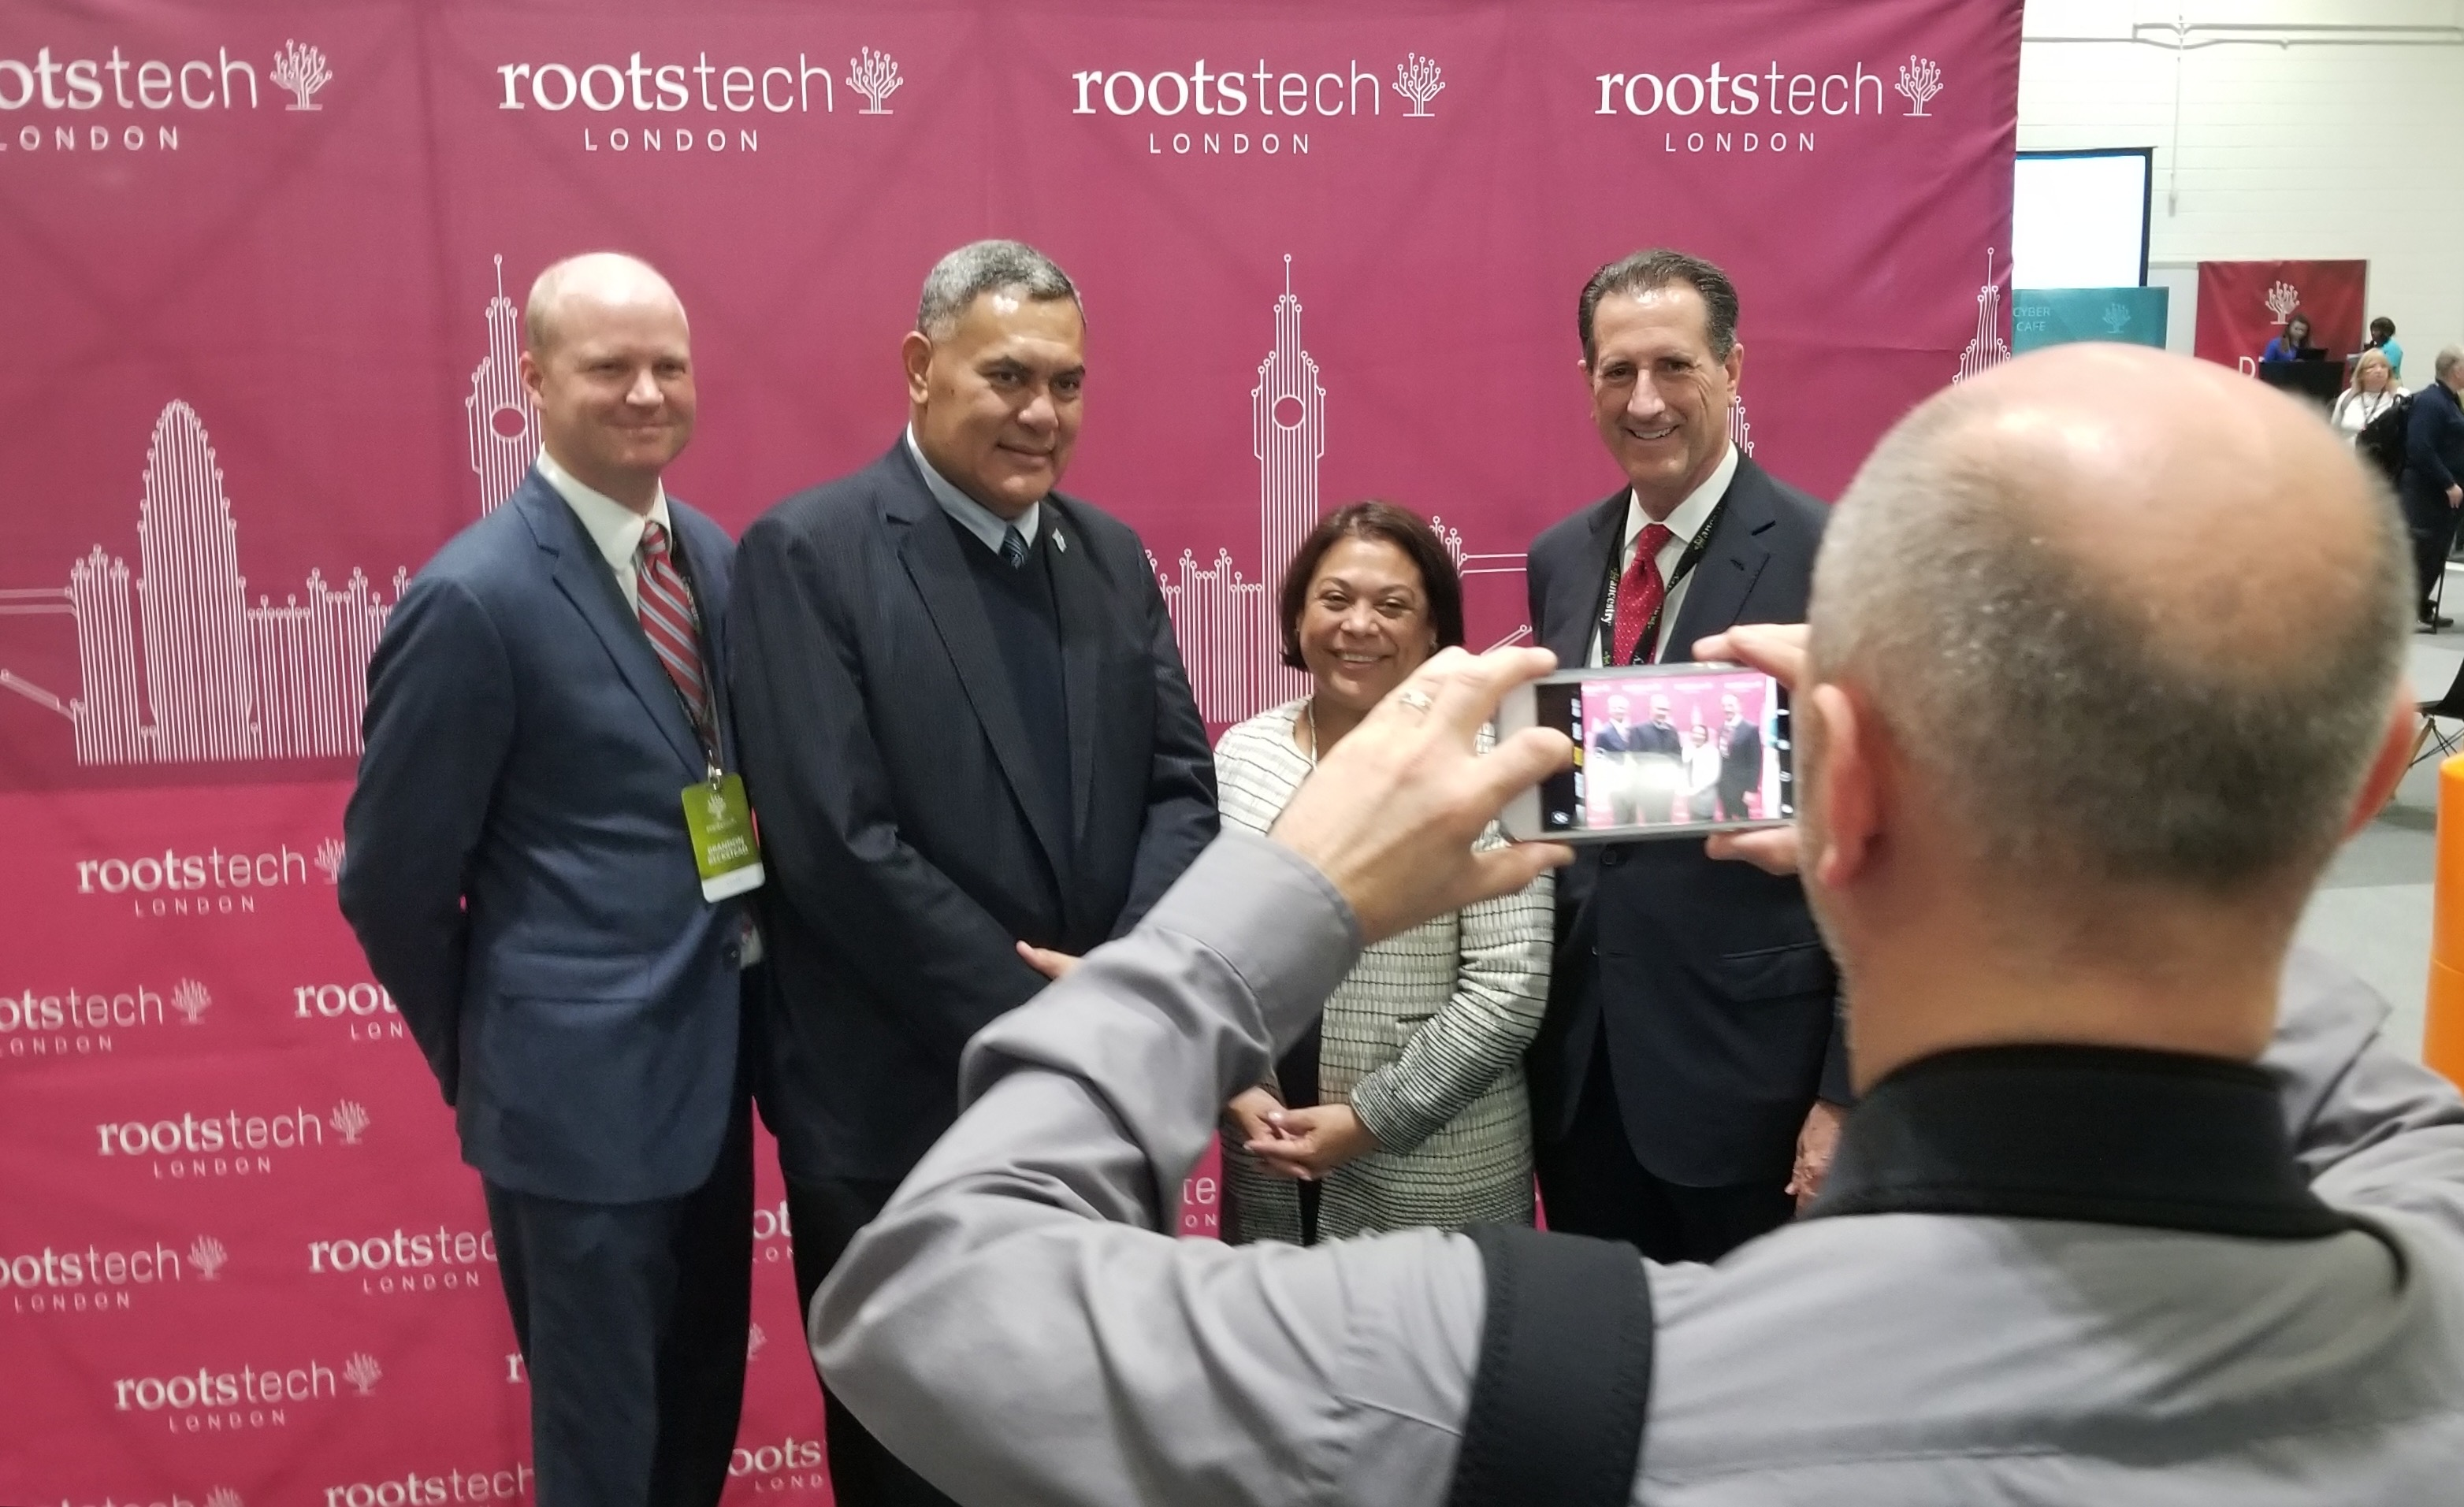 Guests are photographed in the VIP section of the RootsTech London exhibition hall during tours for ambassadors and records custodians on Thursday, Oct. 24, 2019, in London, Great Britain.